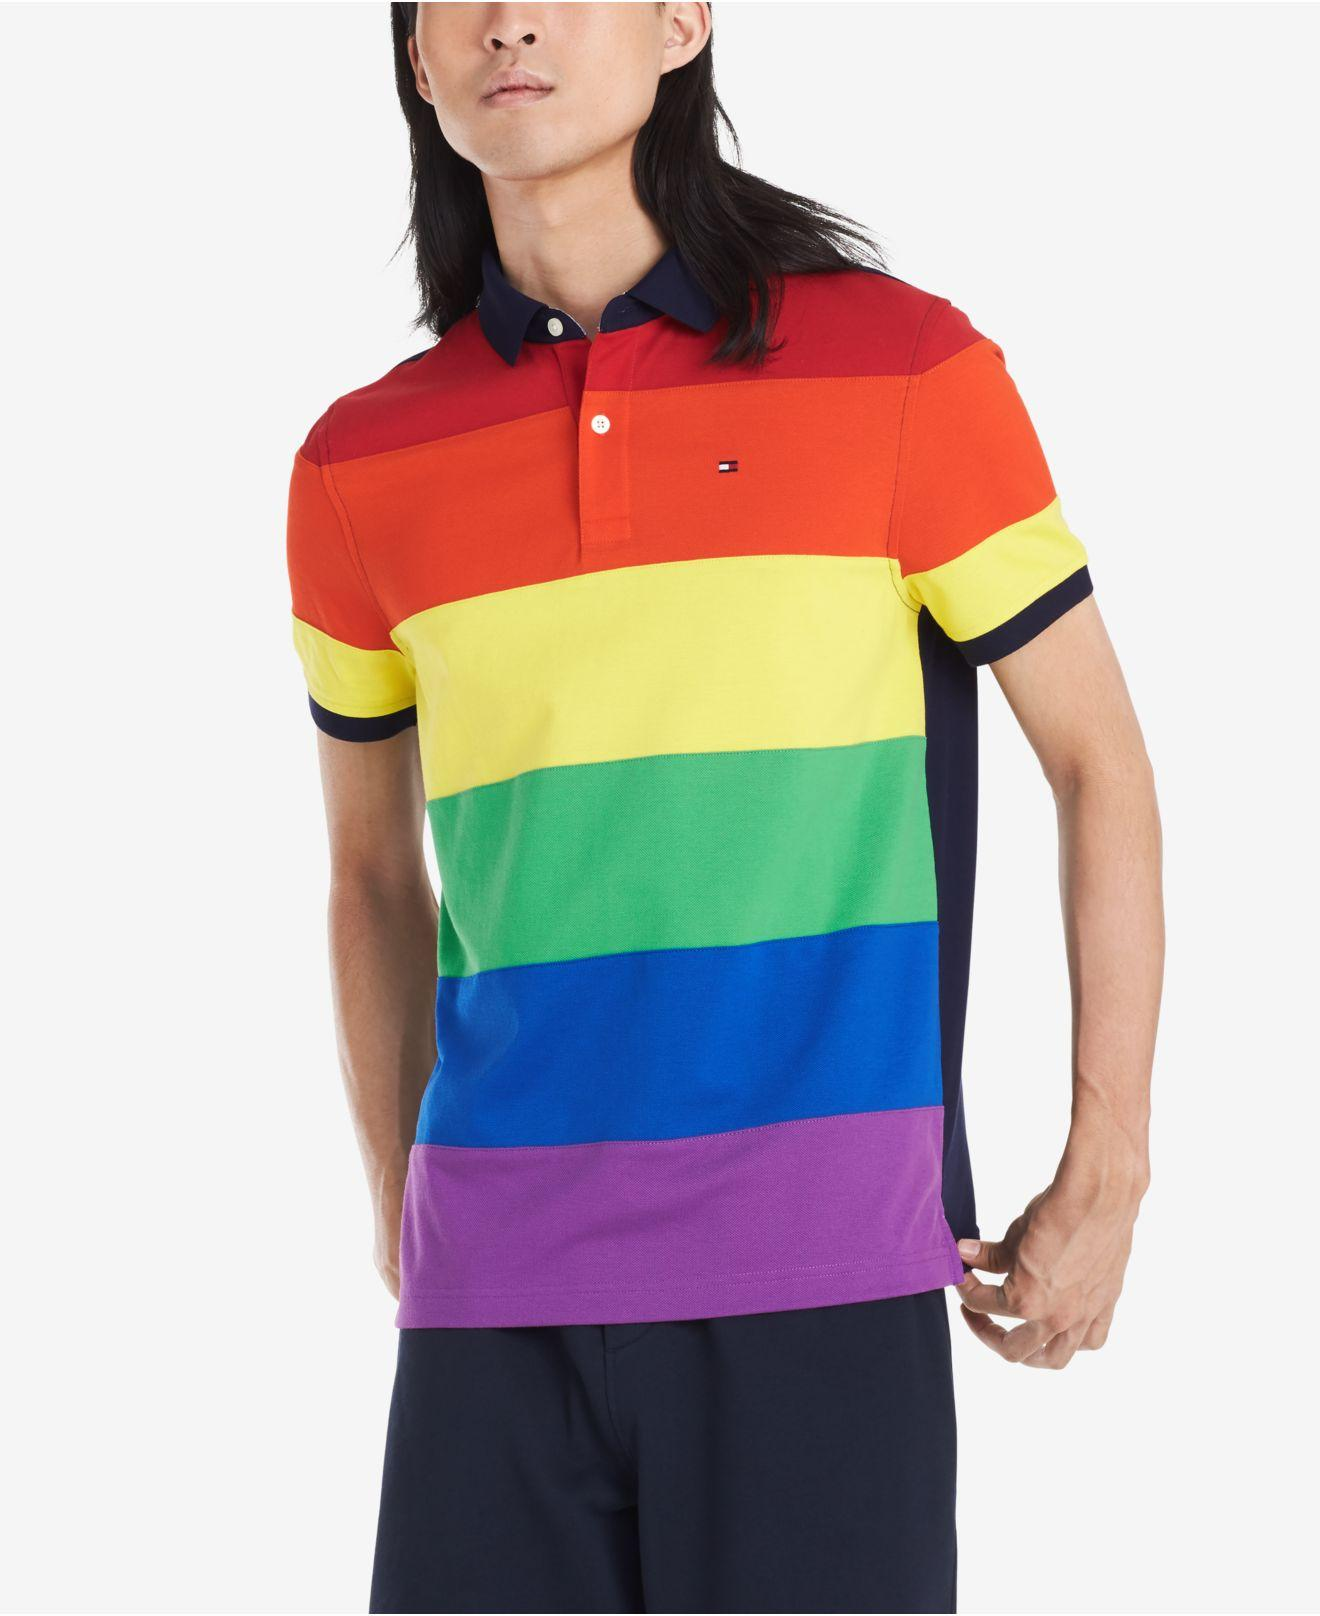 822874cc Tommy Hilfiger Custom-fit Pride Polo for Men - Lyst